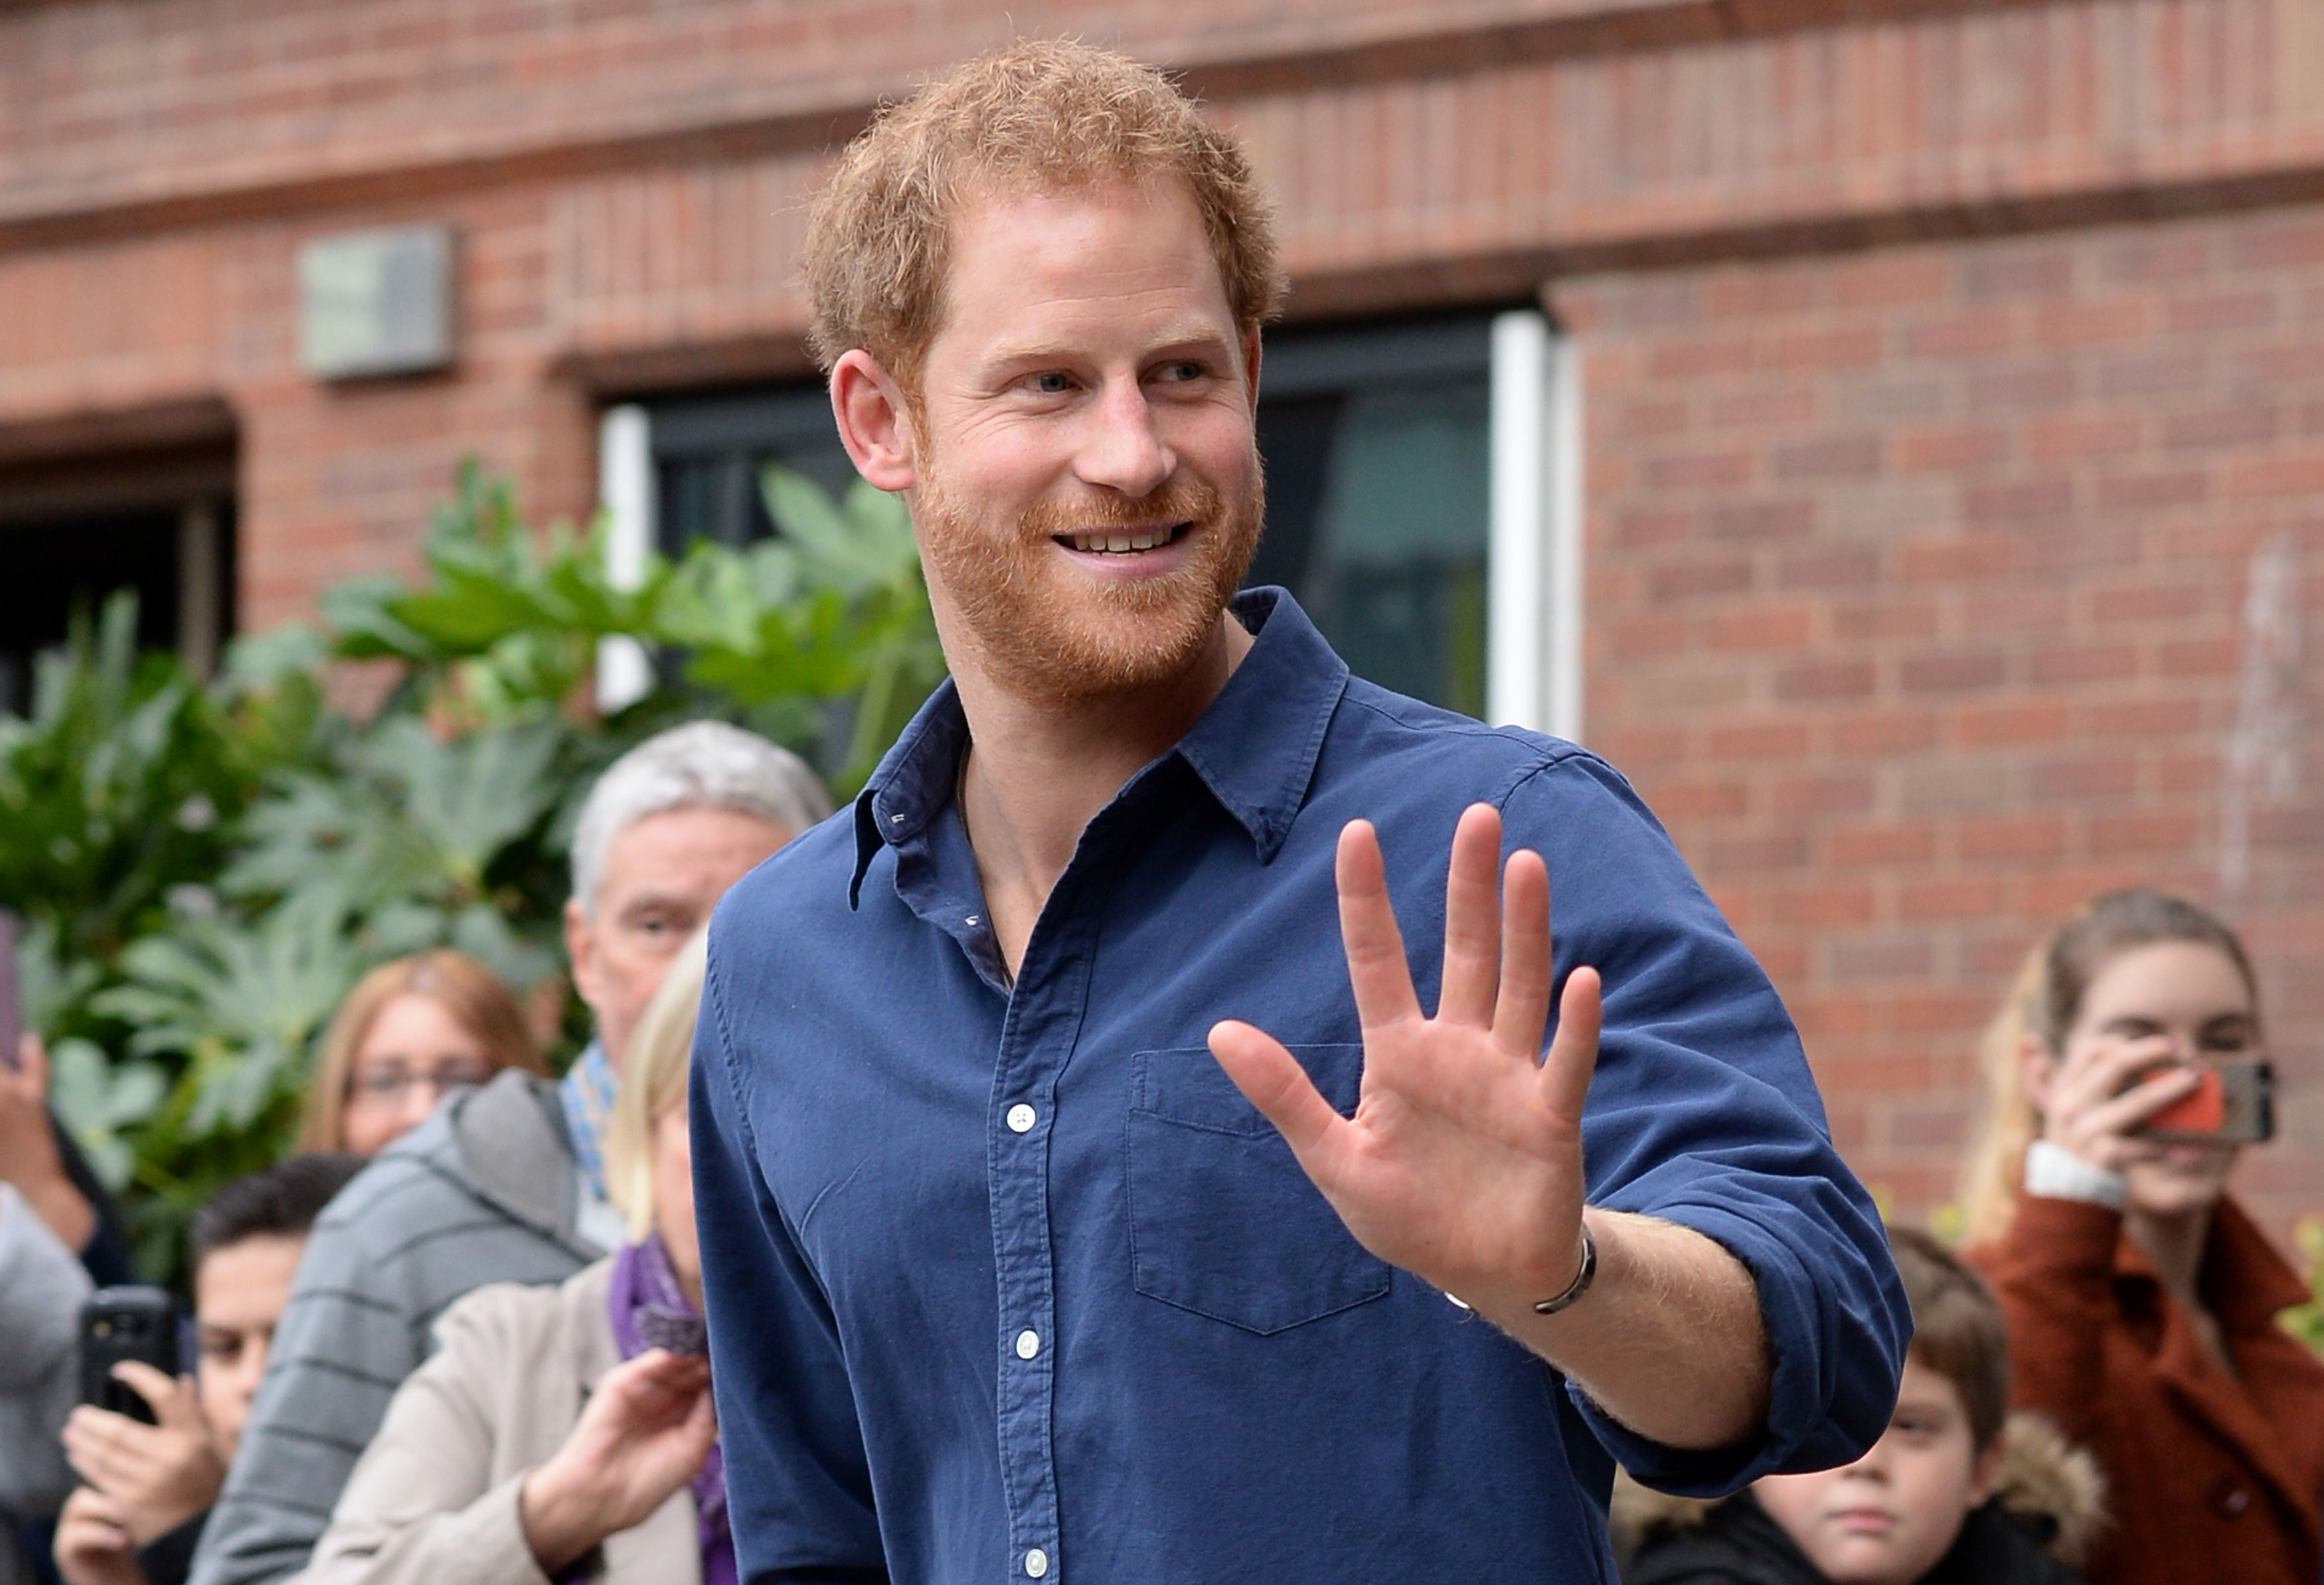 Prince Harry's Living His Best Life and Reportedly Treating Himself to Thickening Hair Treatments